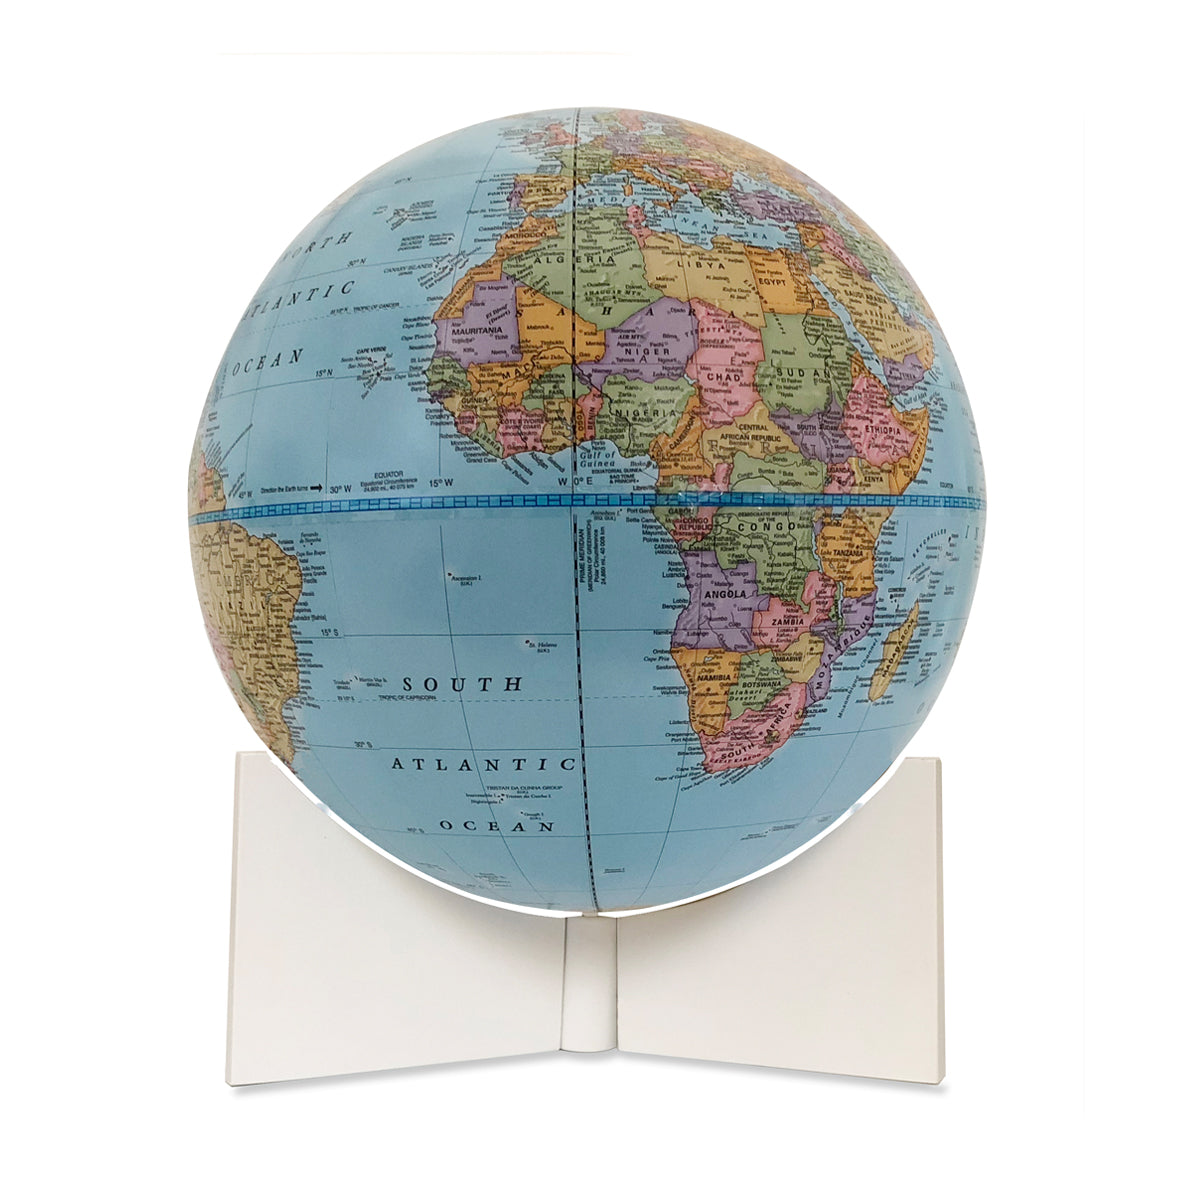 Small Blue Handheld World Globe-white base